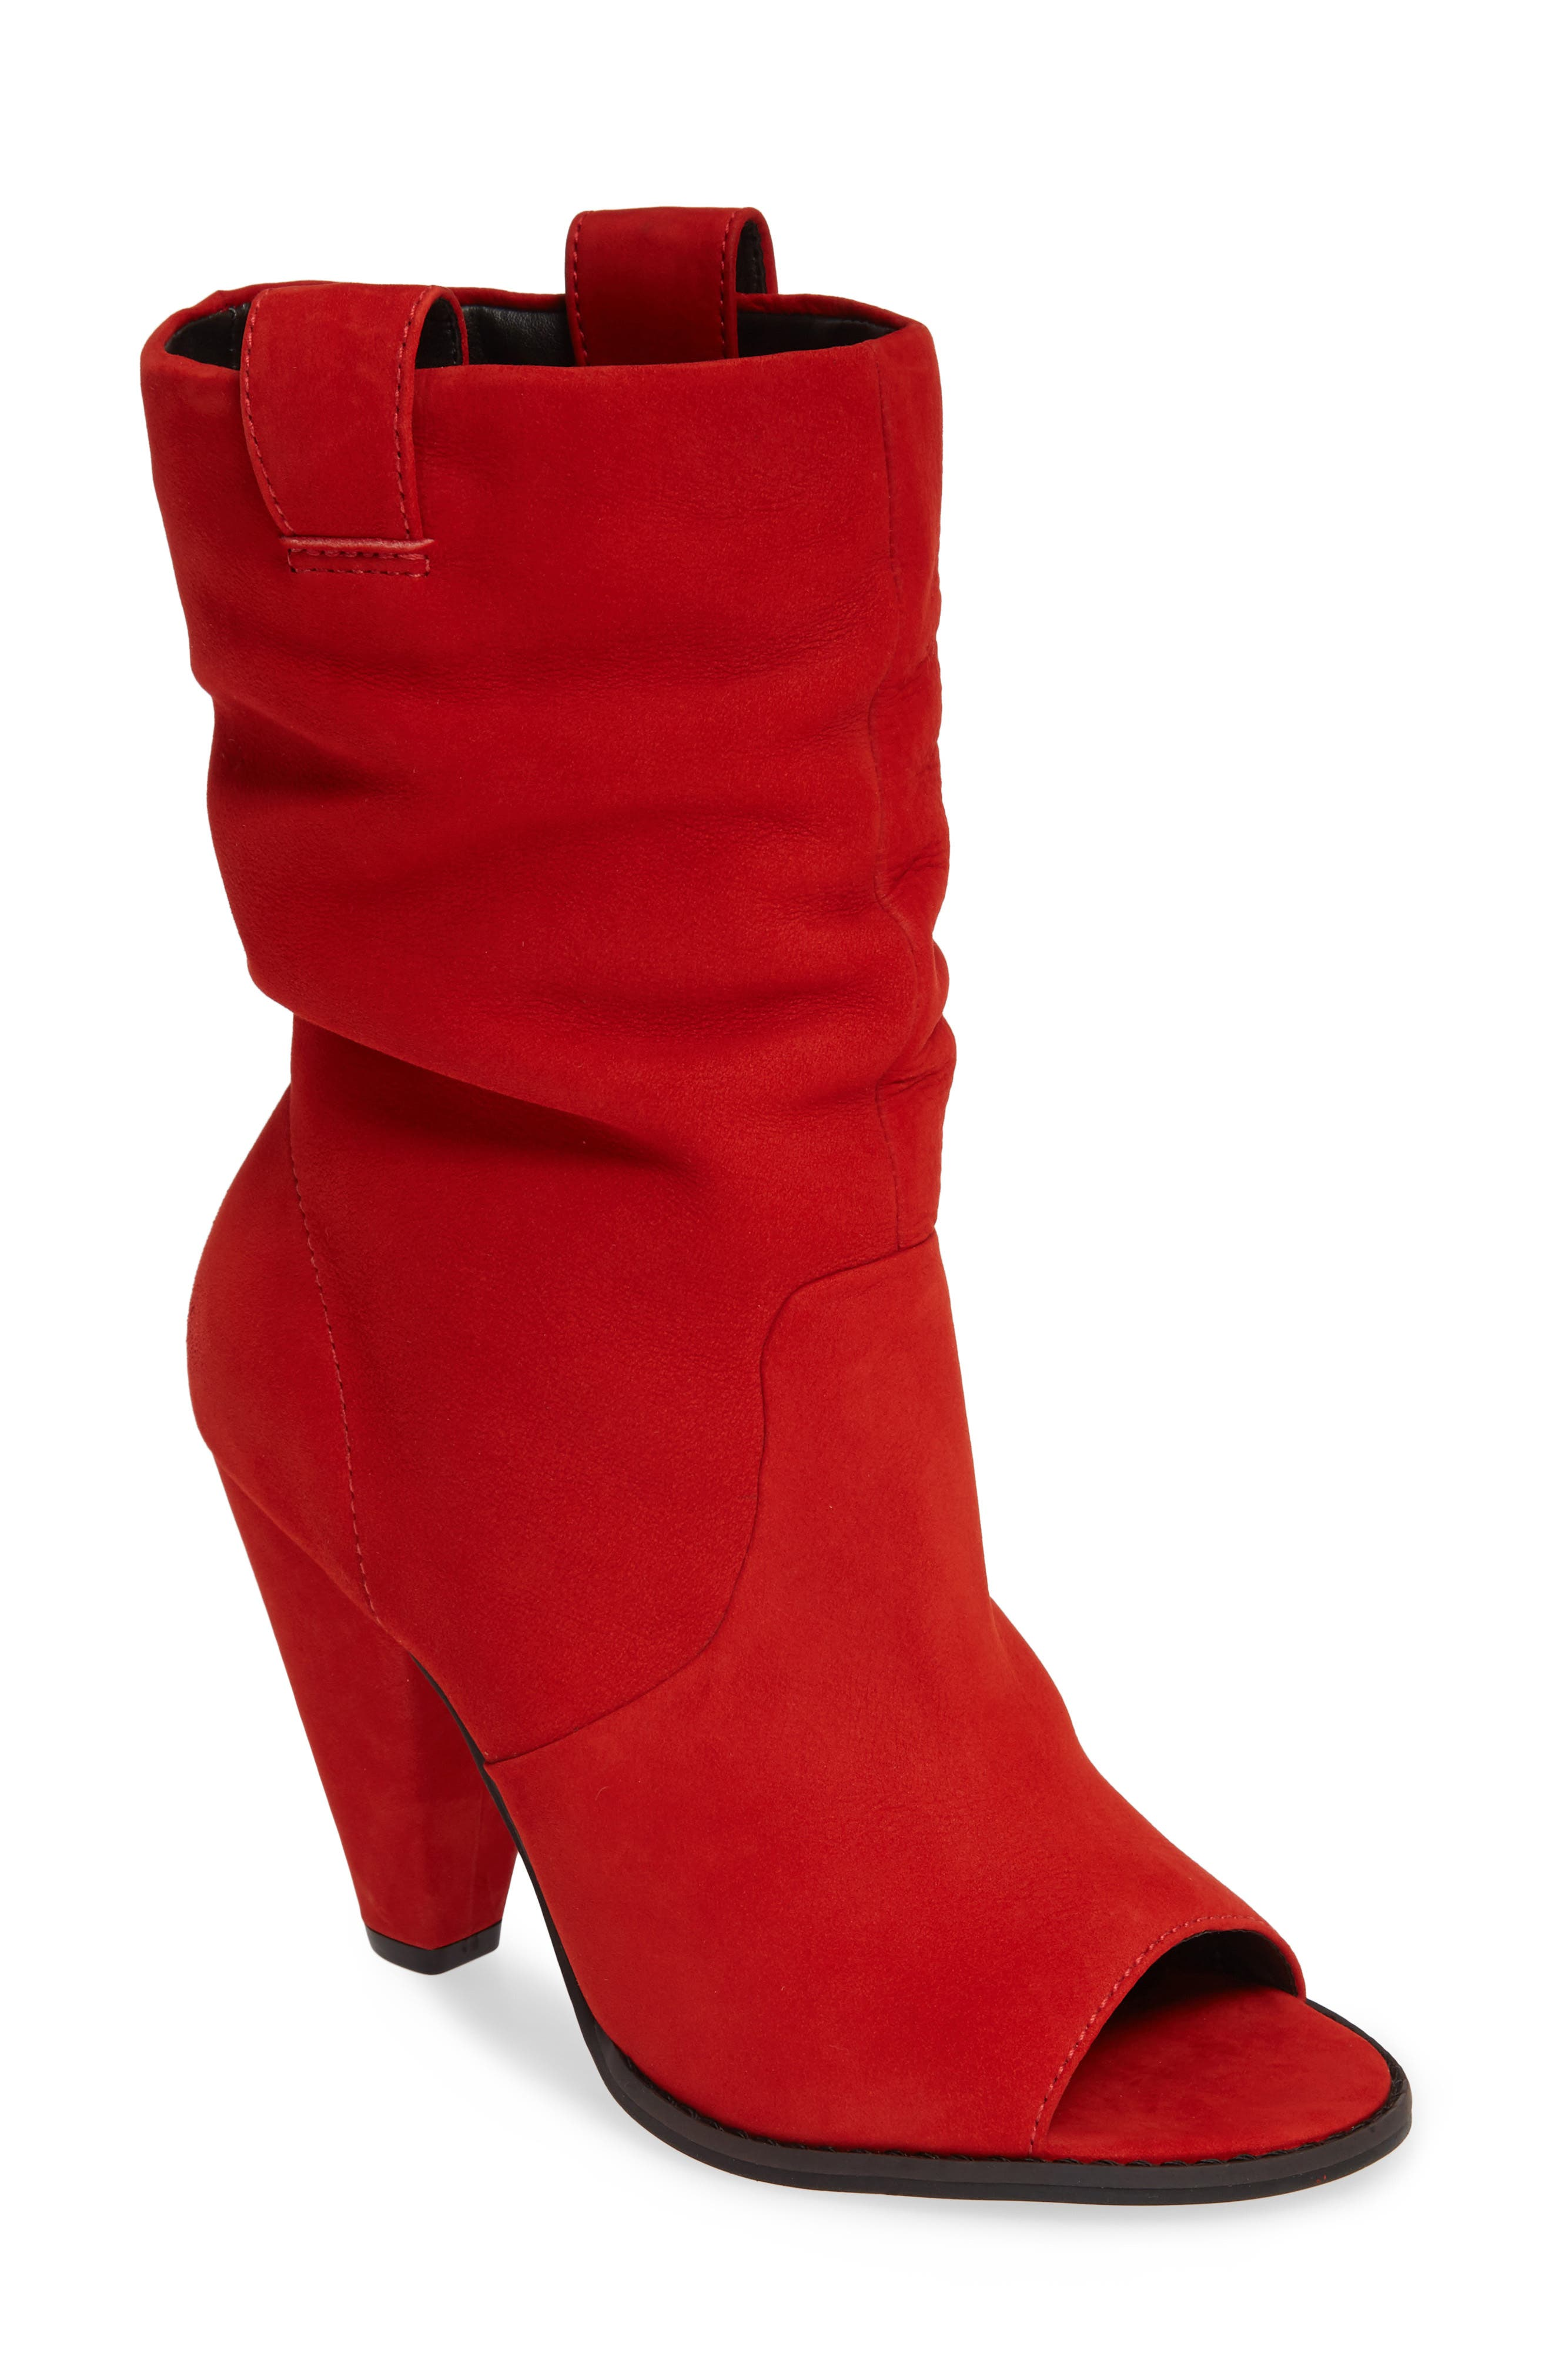 Lust For Life Cleo Open Toe Bootie, Red